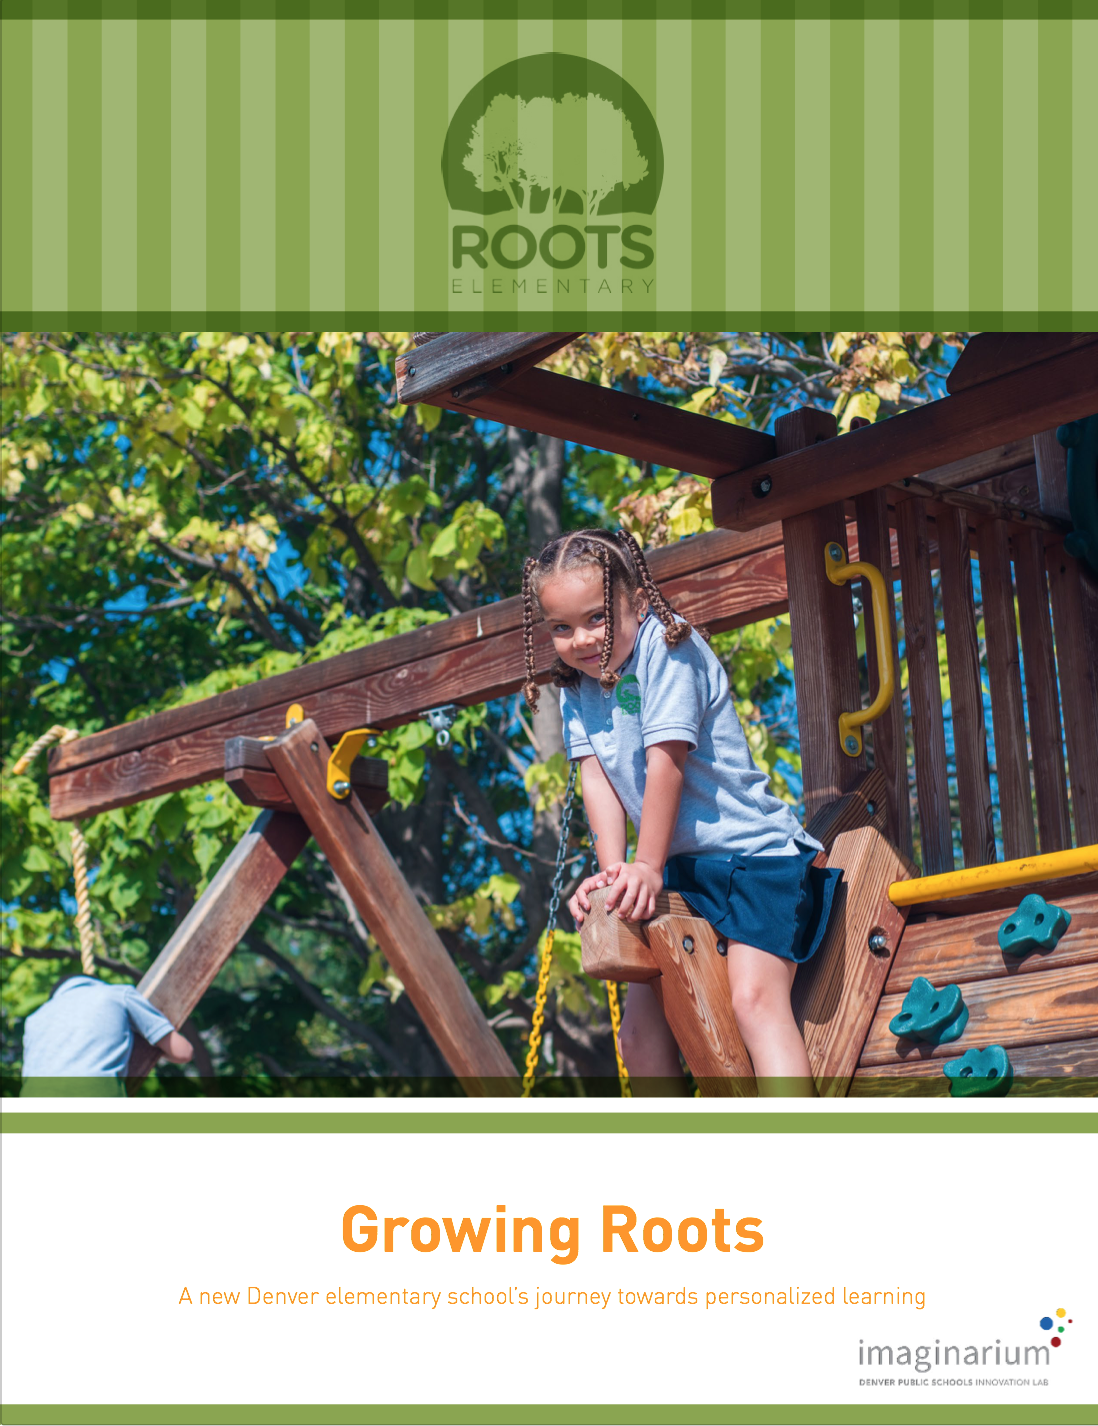 growing roots: a new denver elementary school's journey towards personalized learning, january 2016